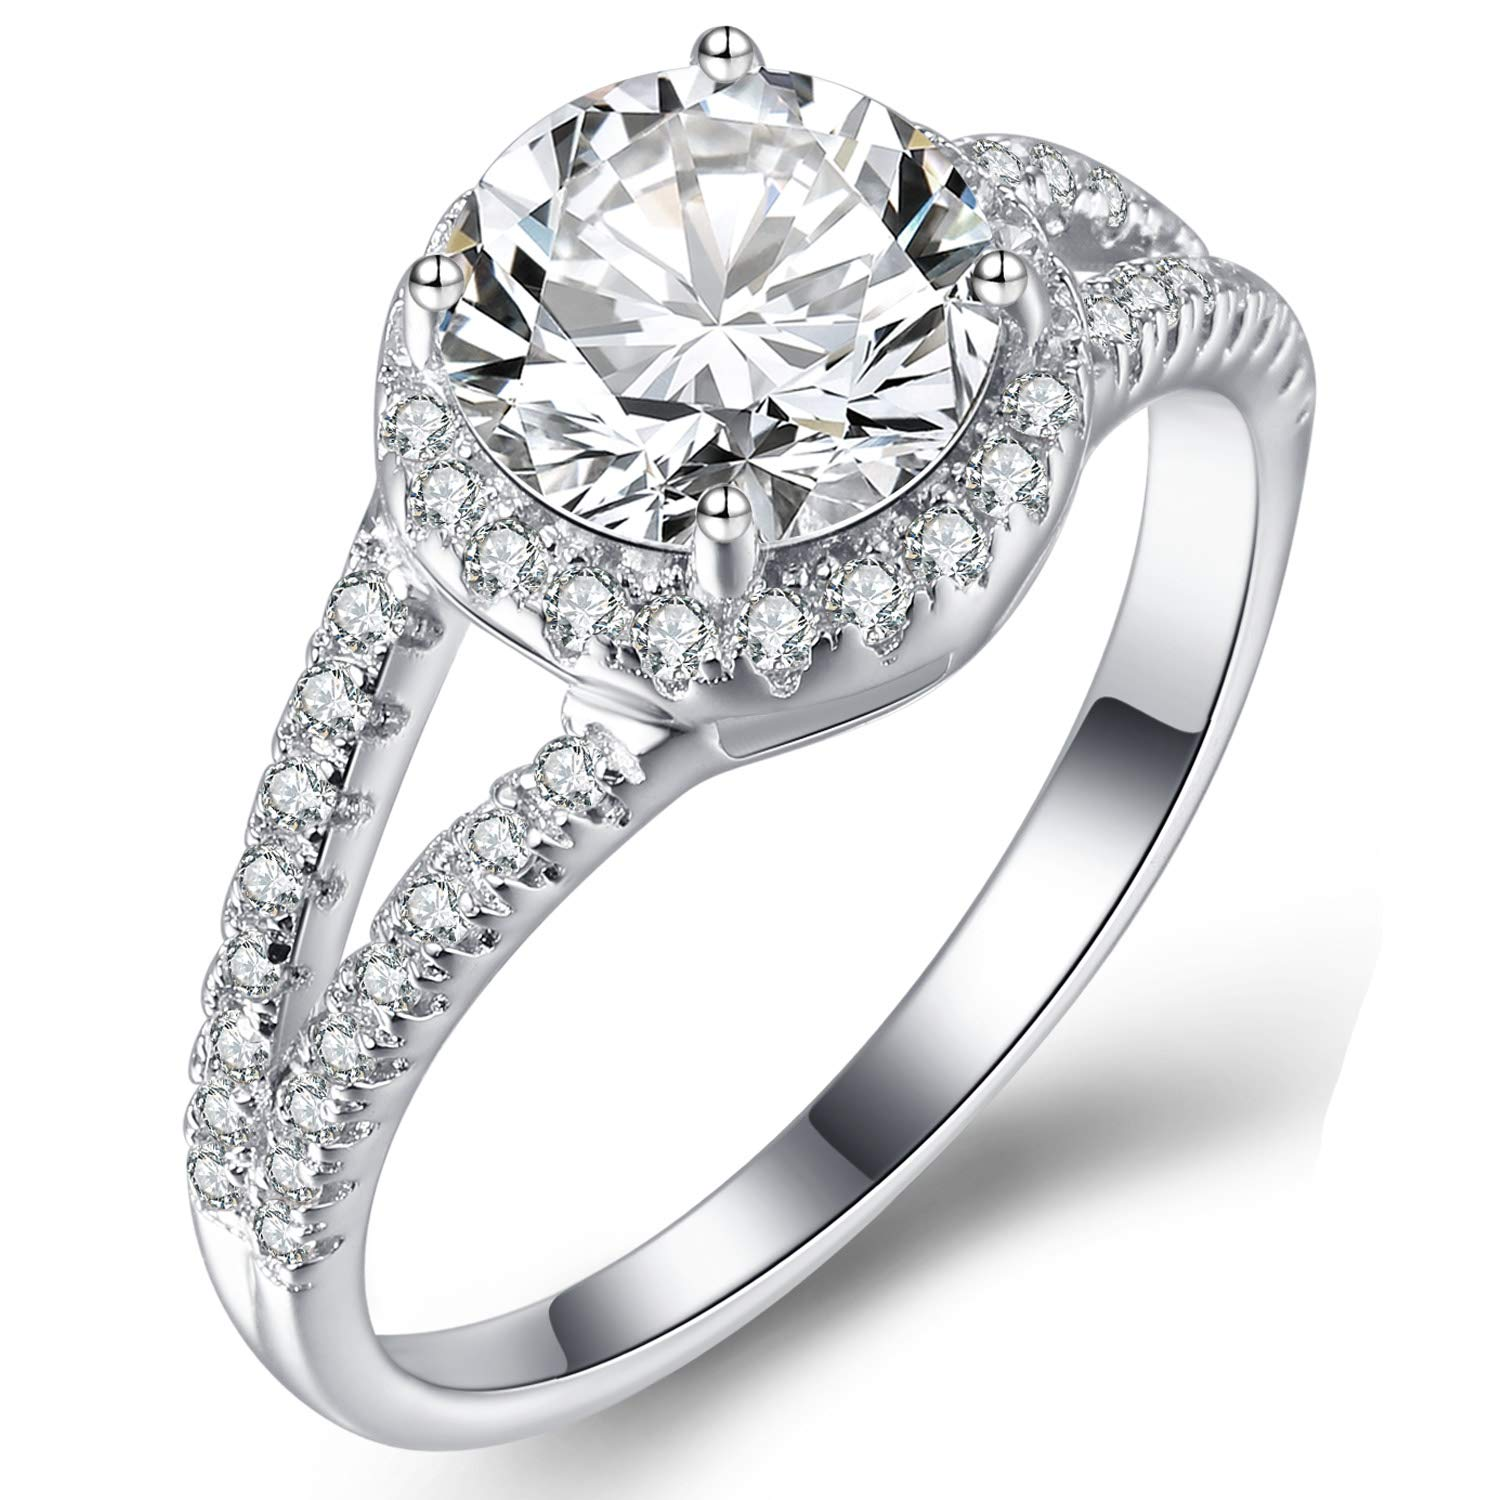 e911dbf995501 Caperci Sterling Silver Split Shank Round Cubic Zirconia Solitaire Halo  Engagement Ring